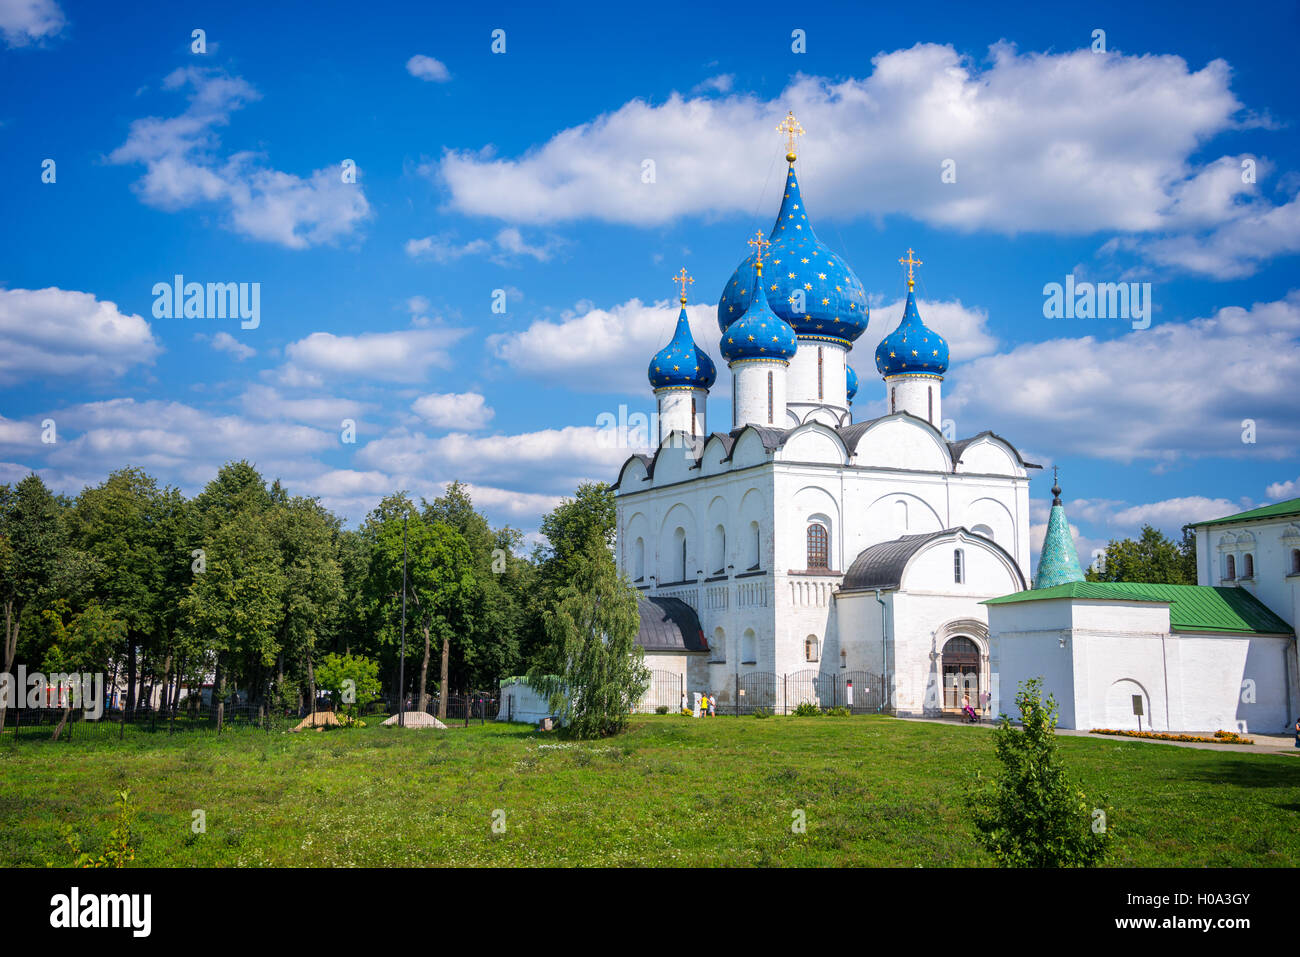 Cathedral of the Nativitys in Suzdal, Golden Ring, Russia - Stock Image